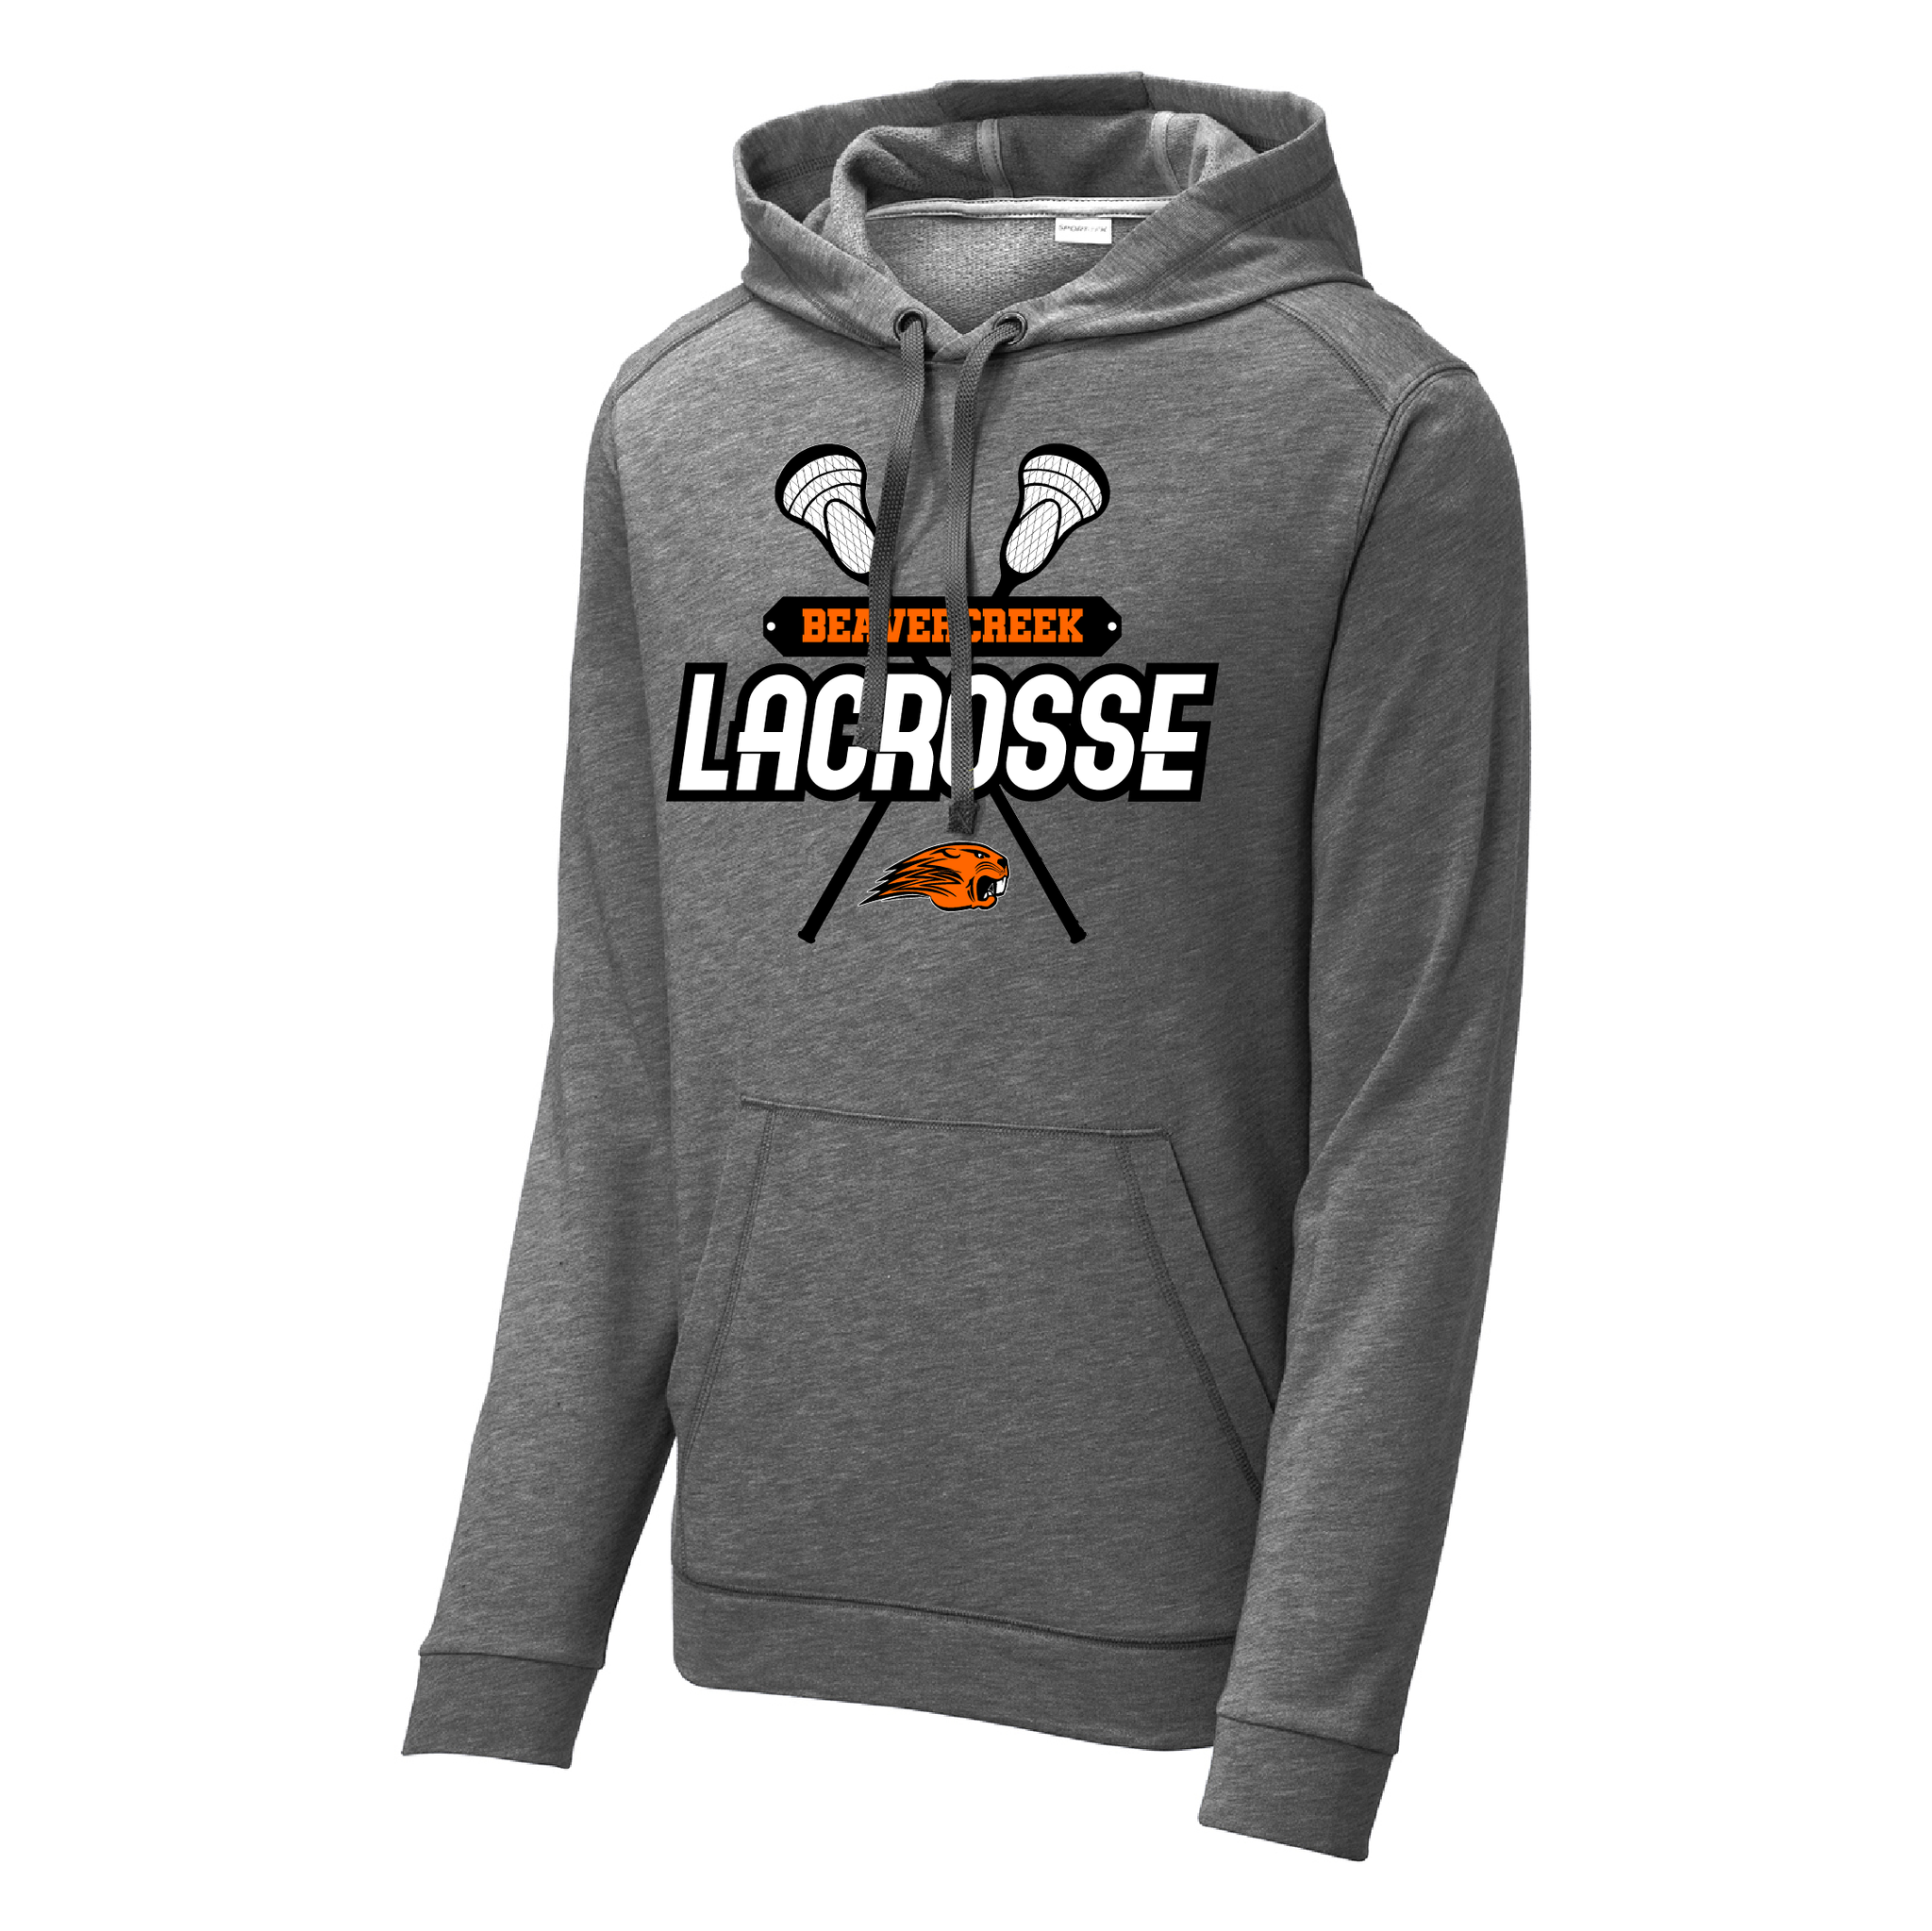 Beavercreek Lacrosse Club Tri-Blend Wicking Fleece Hooded Pullover